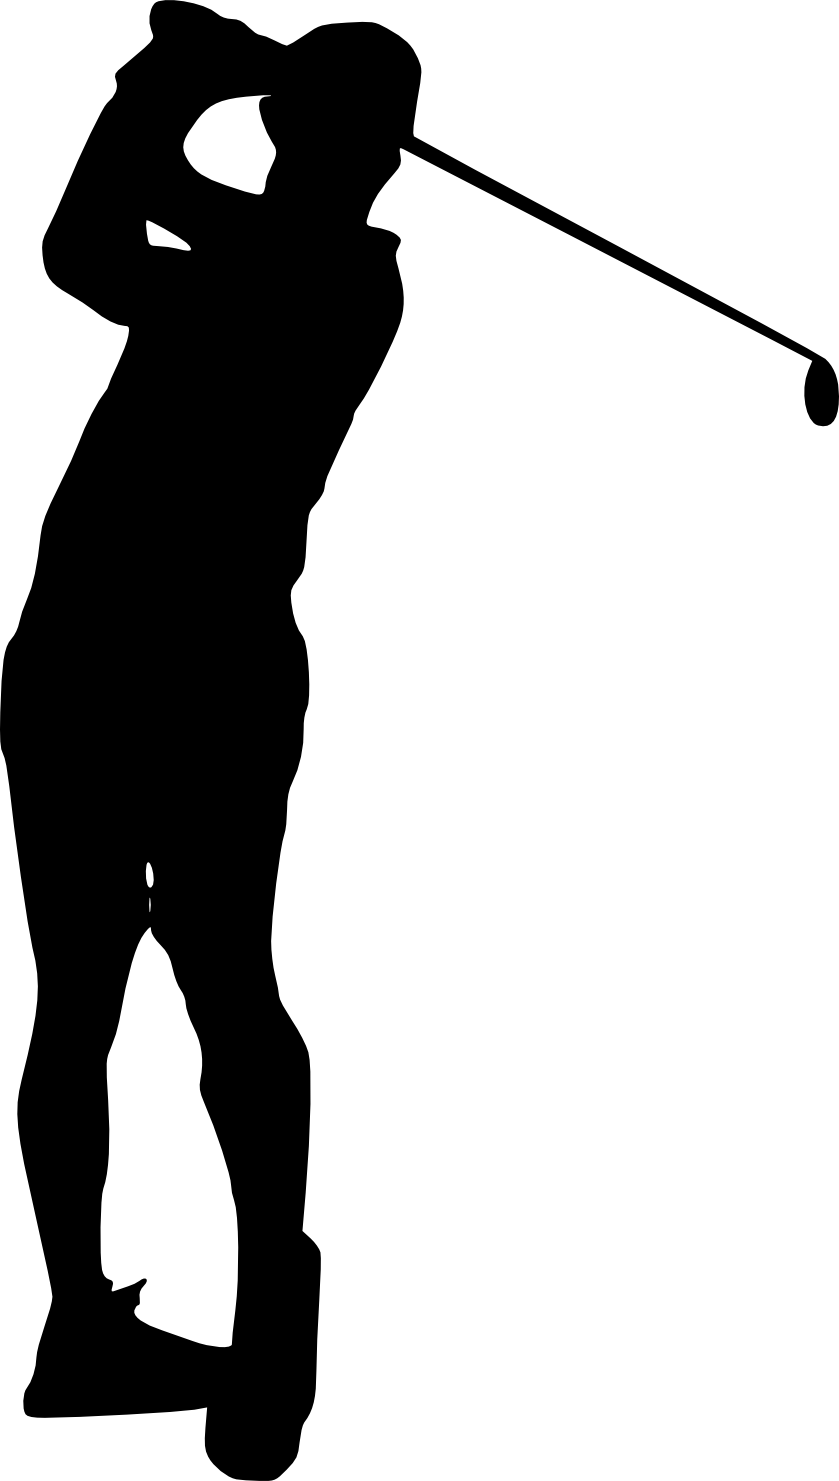 golfer clipart pitch